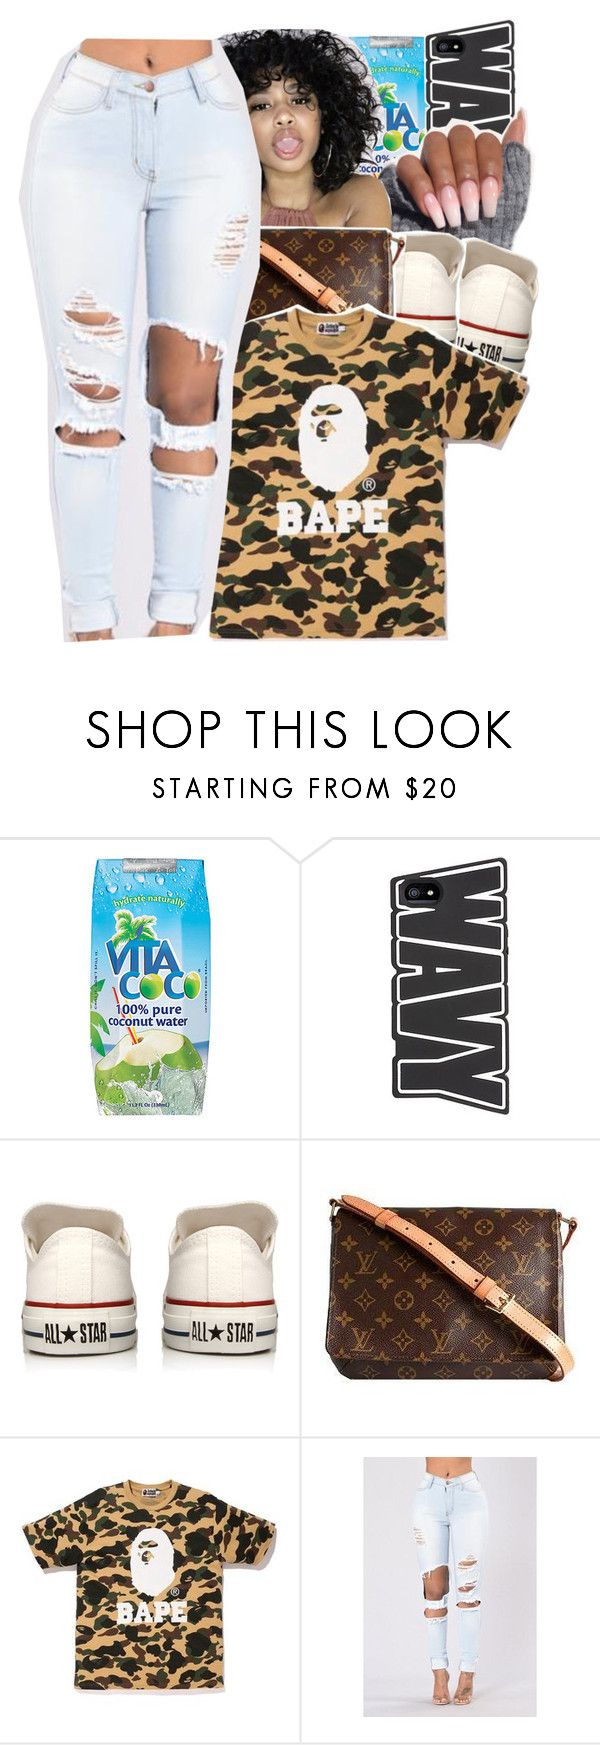 """""""im too wavy but you won't chase me"""" by geazybxtch24 ❤ liked on Polyvore featuring Vita Coco, Converse, Louis Vuitton and A BATHING APE"""